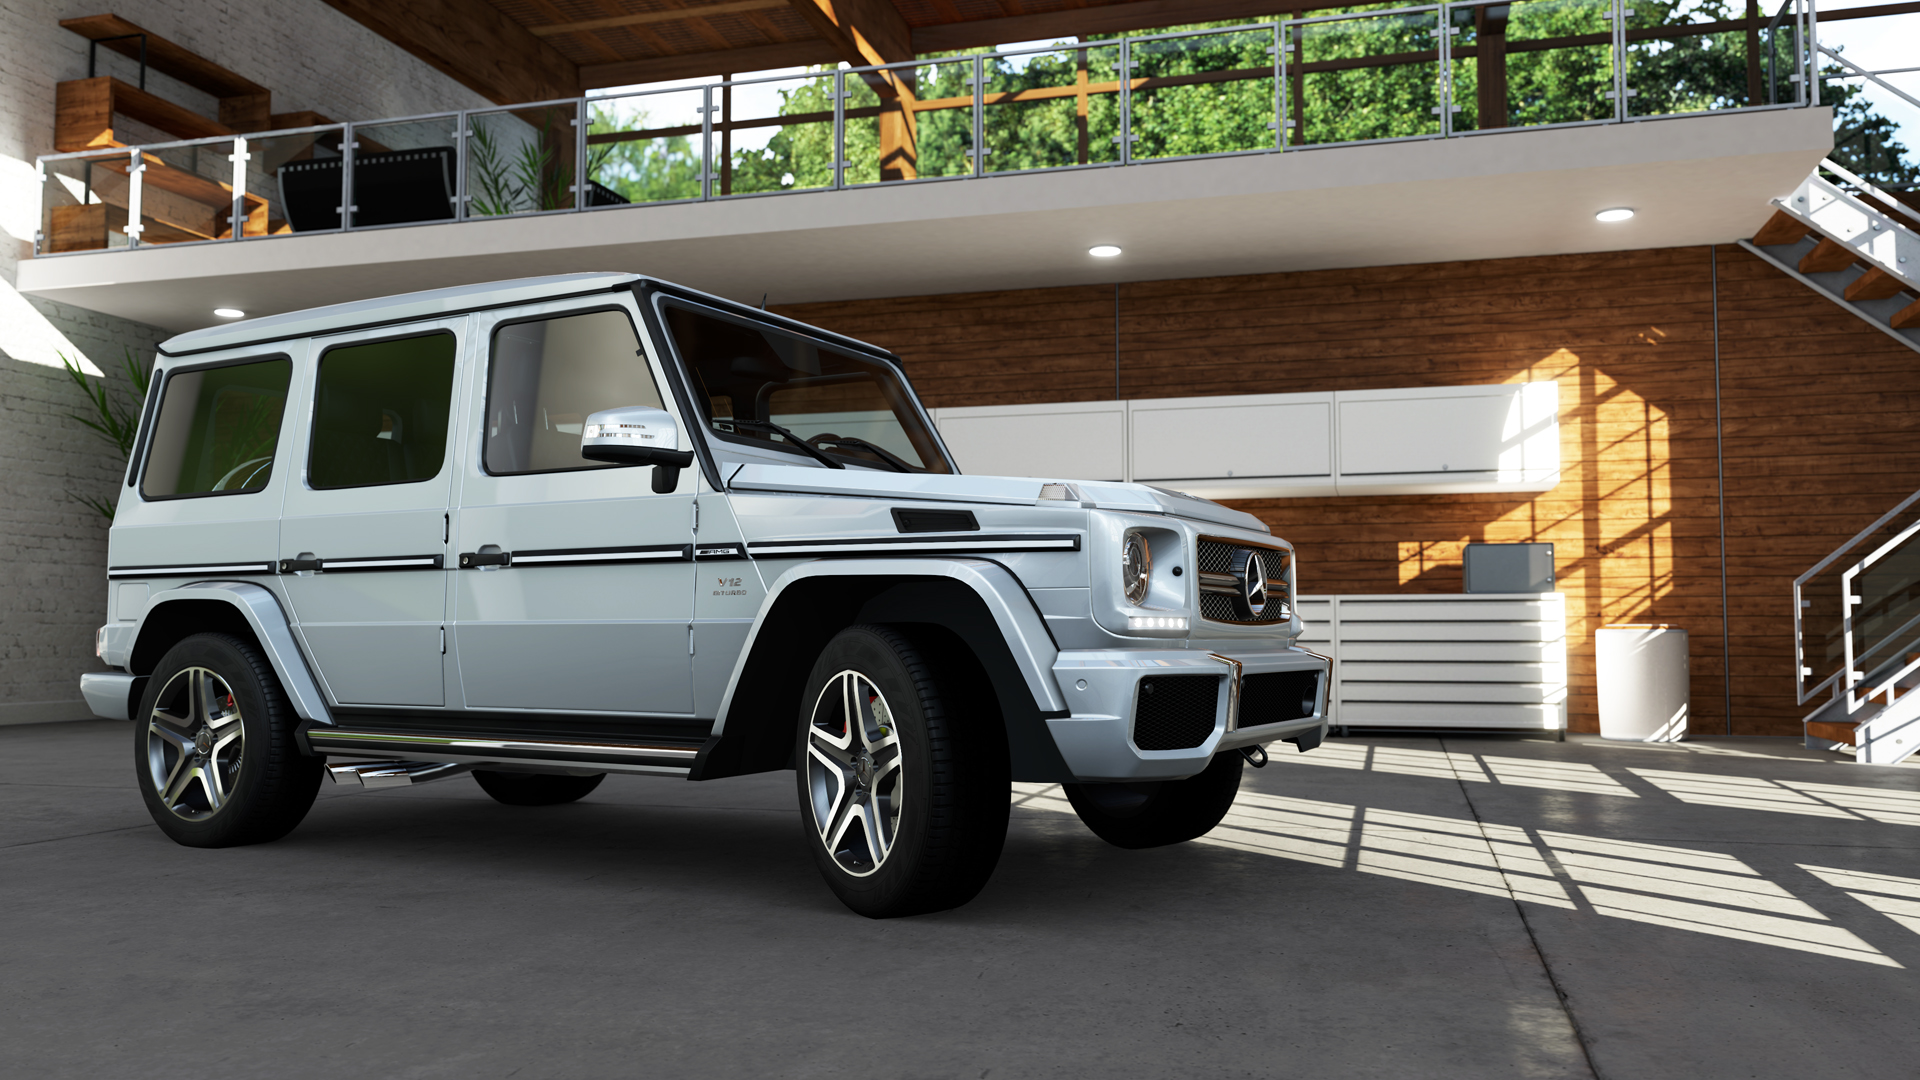 Forza motorsport 5 cars for Mercedes benz g65